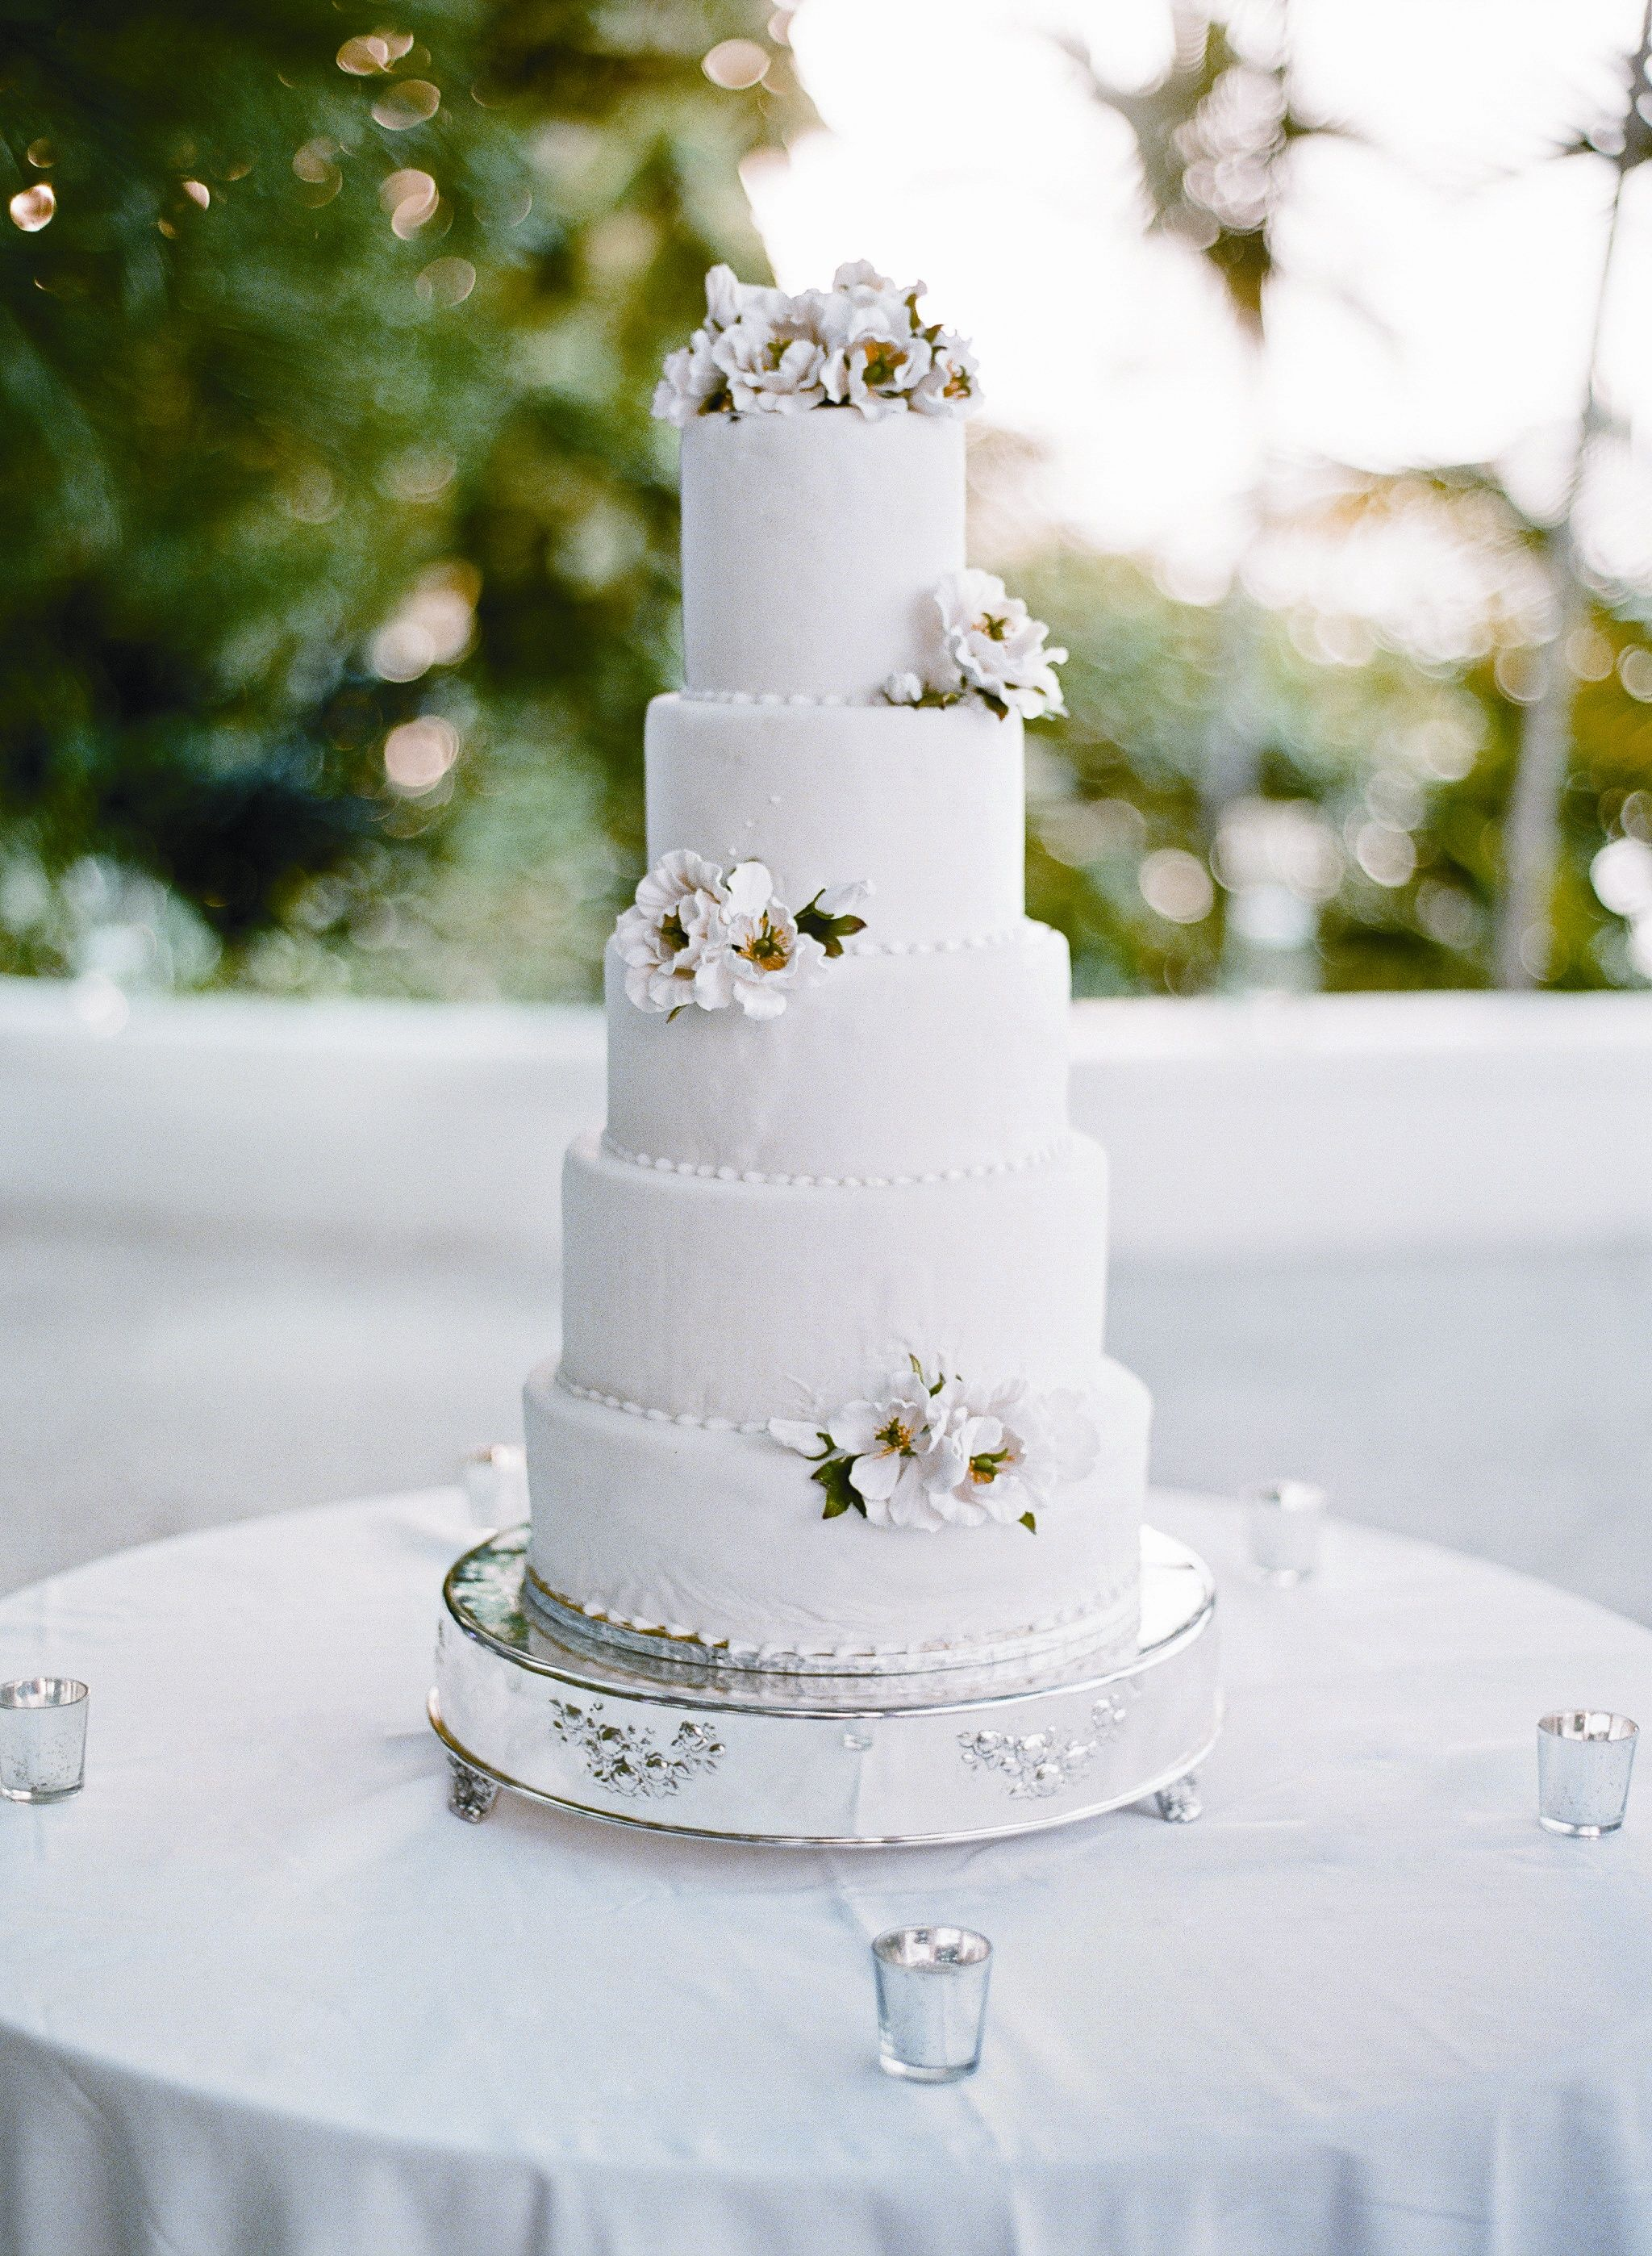 Five Tier White Wedding Cake With Sugar Flowers Kt Merry Photography Theknot Com Wedding Cake Toppers Sugar Flower Wedding Cake Wedding Cake Shot